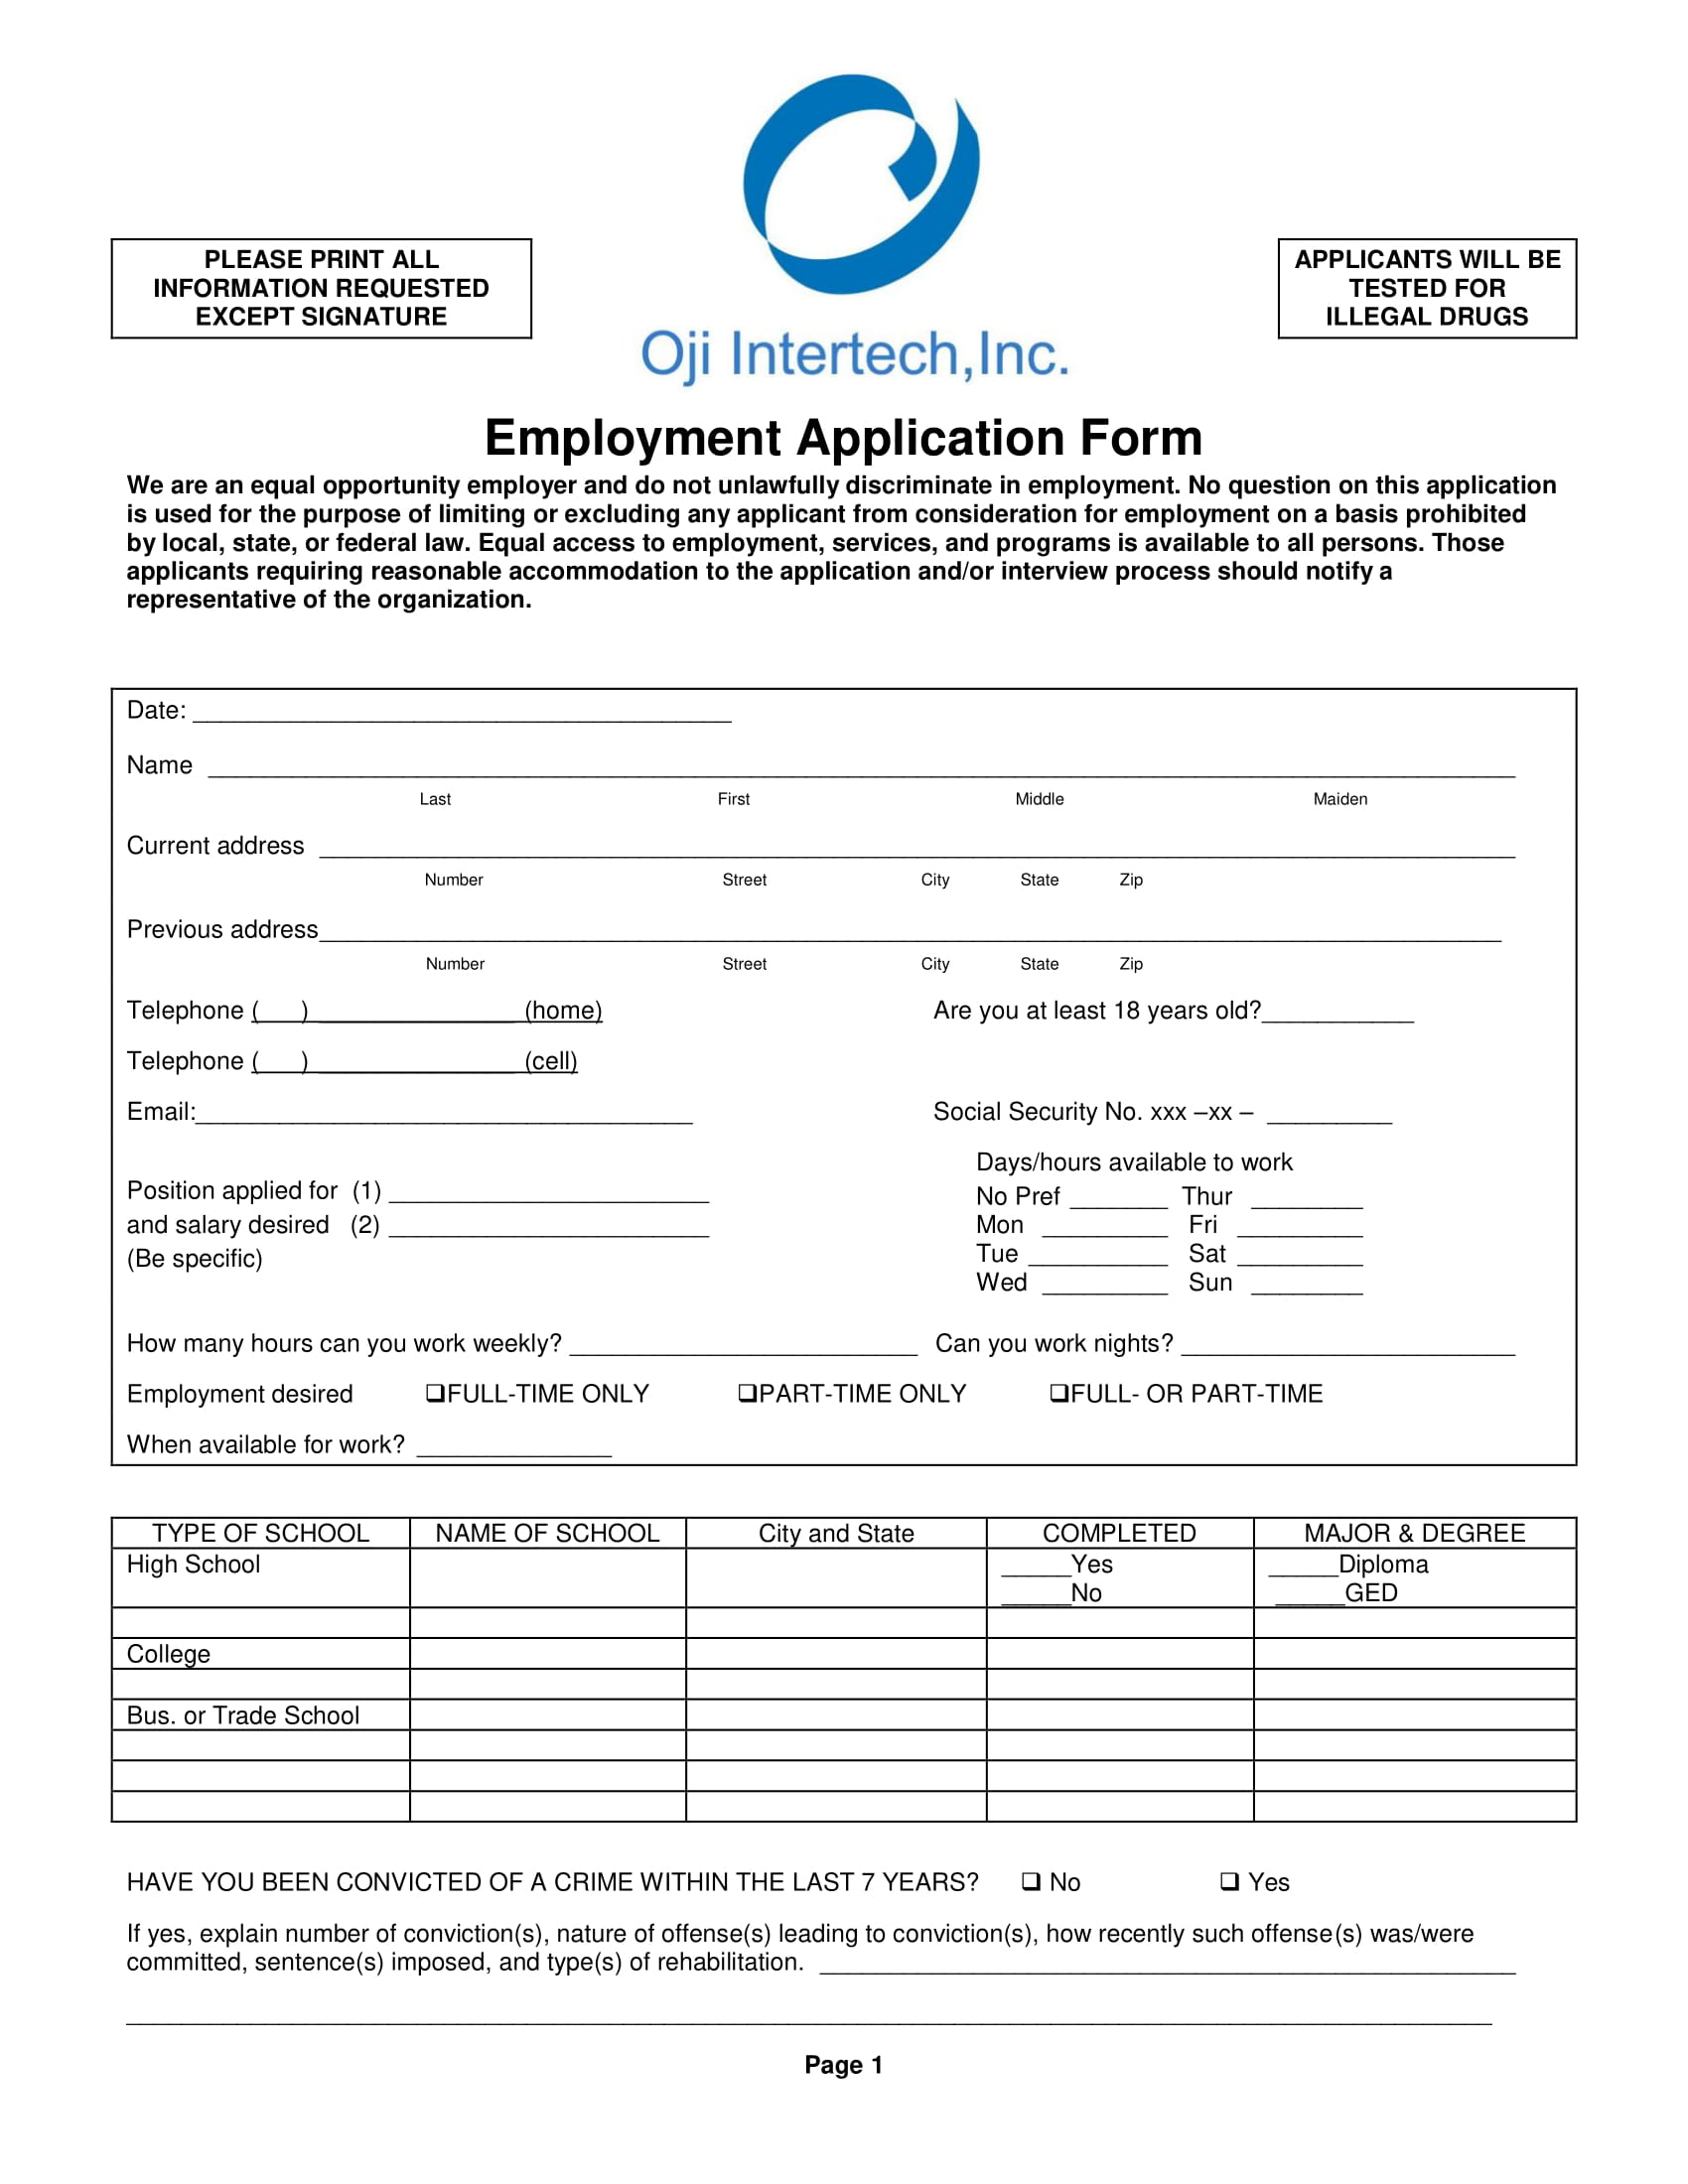 exampel employment application form